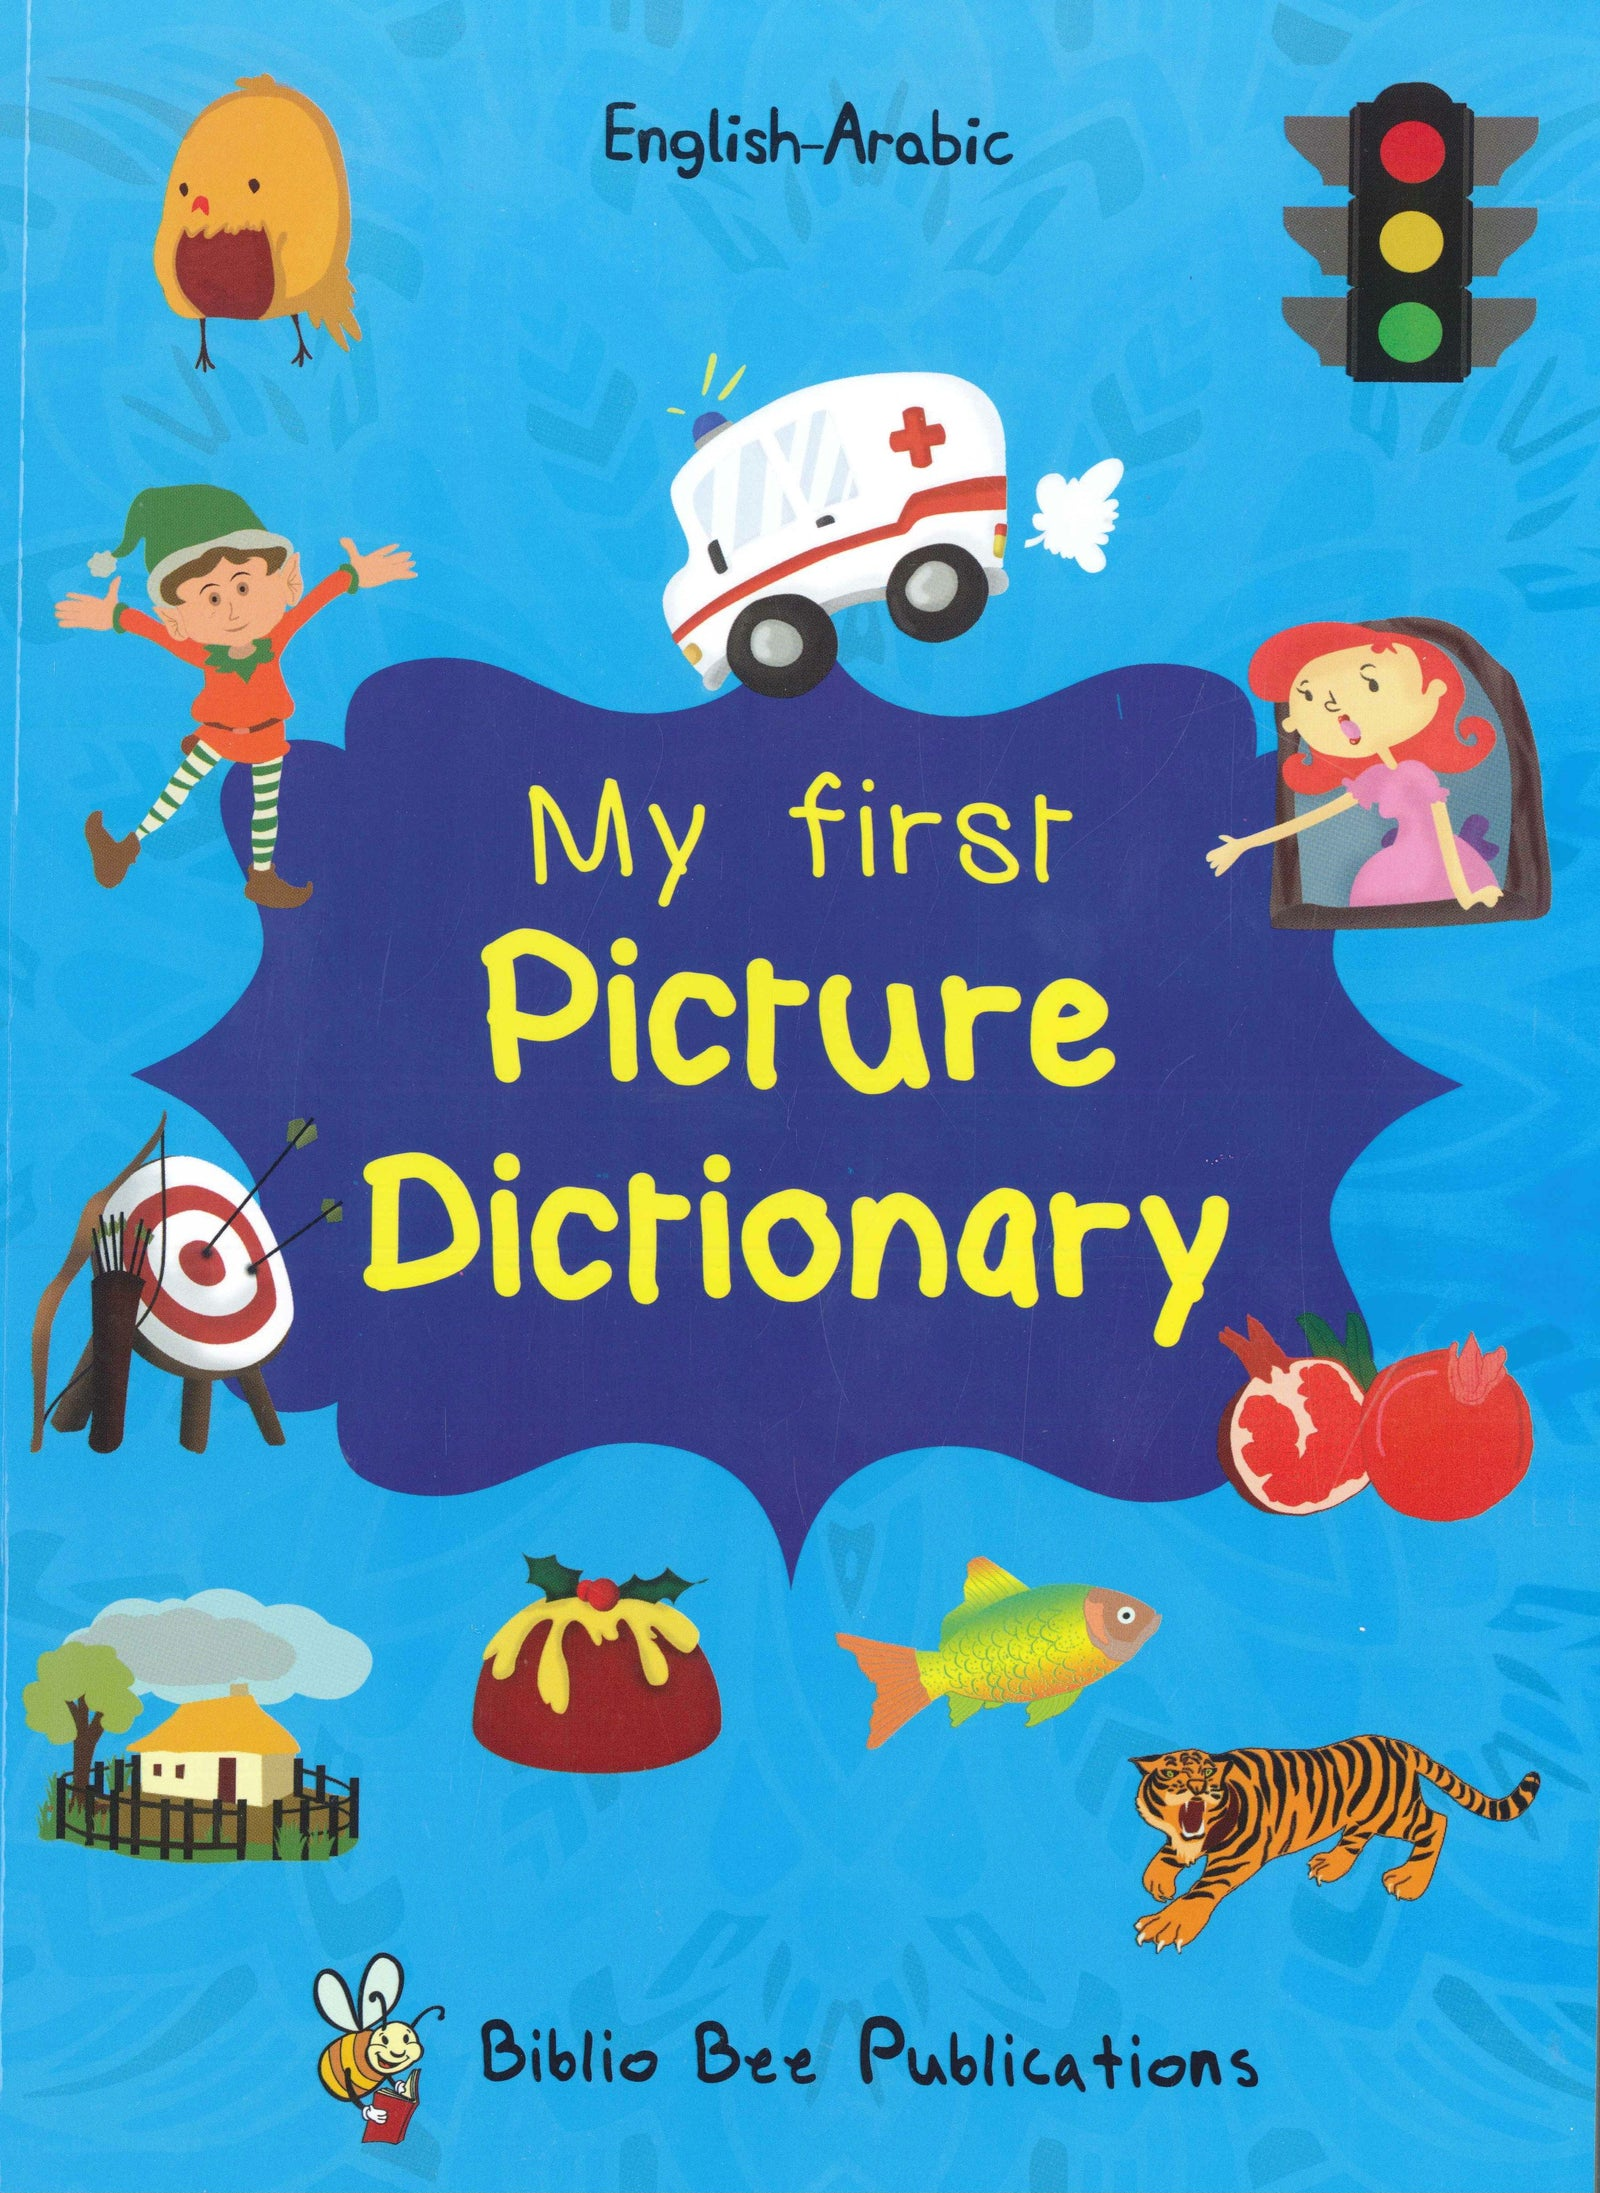 My First Picture Dictionary: English-Arabic 9781908357748 - front cover